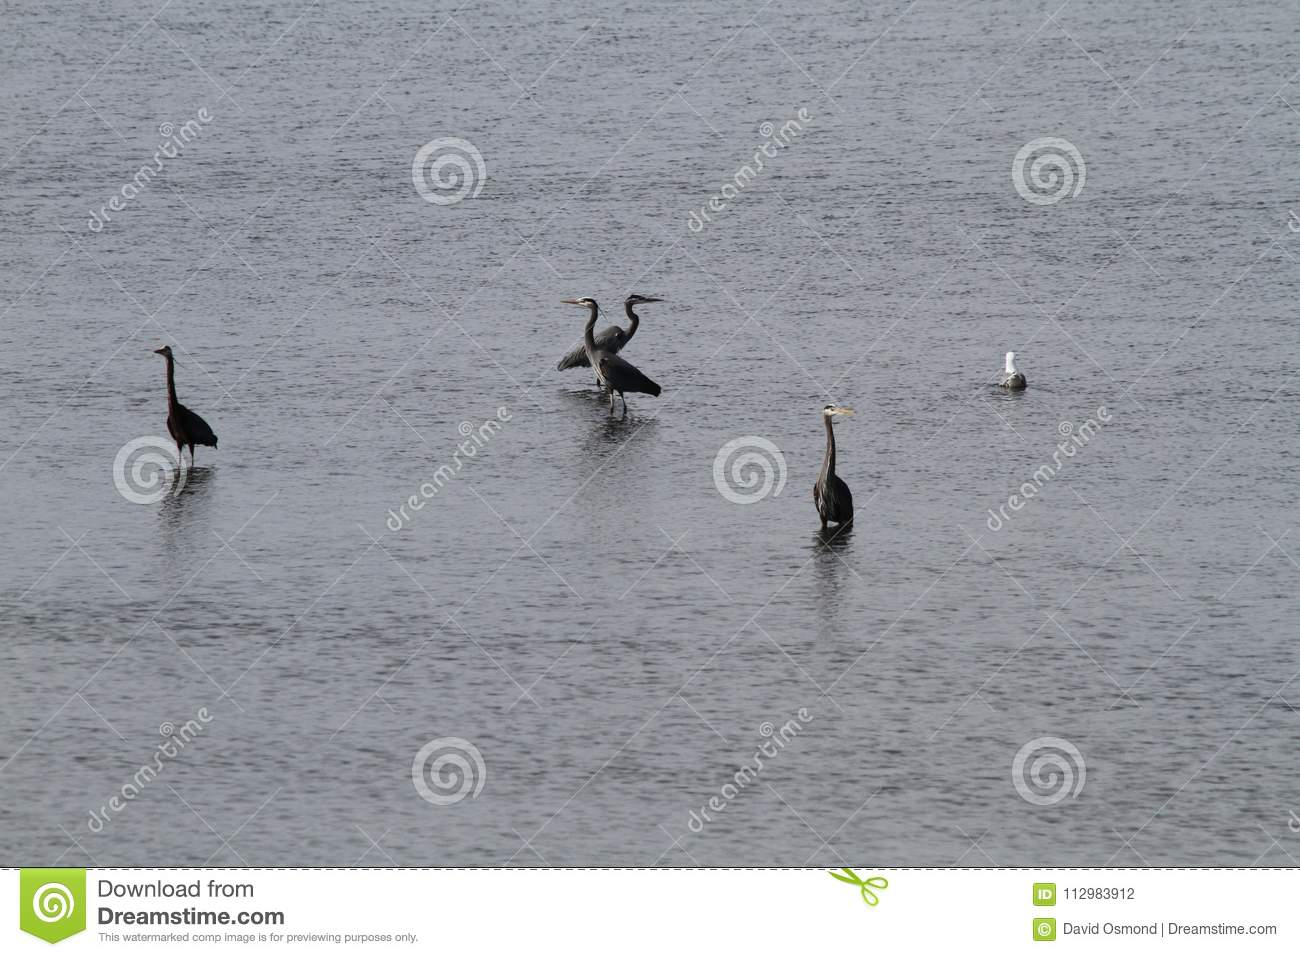 A flock of herons standing in shallow water